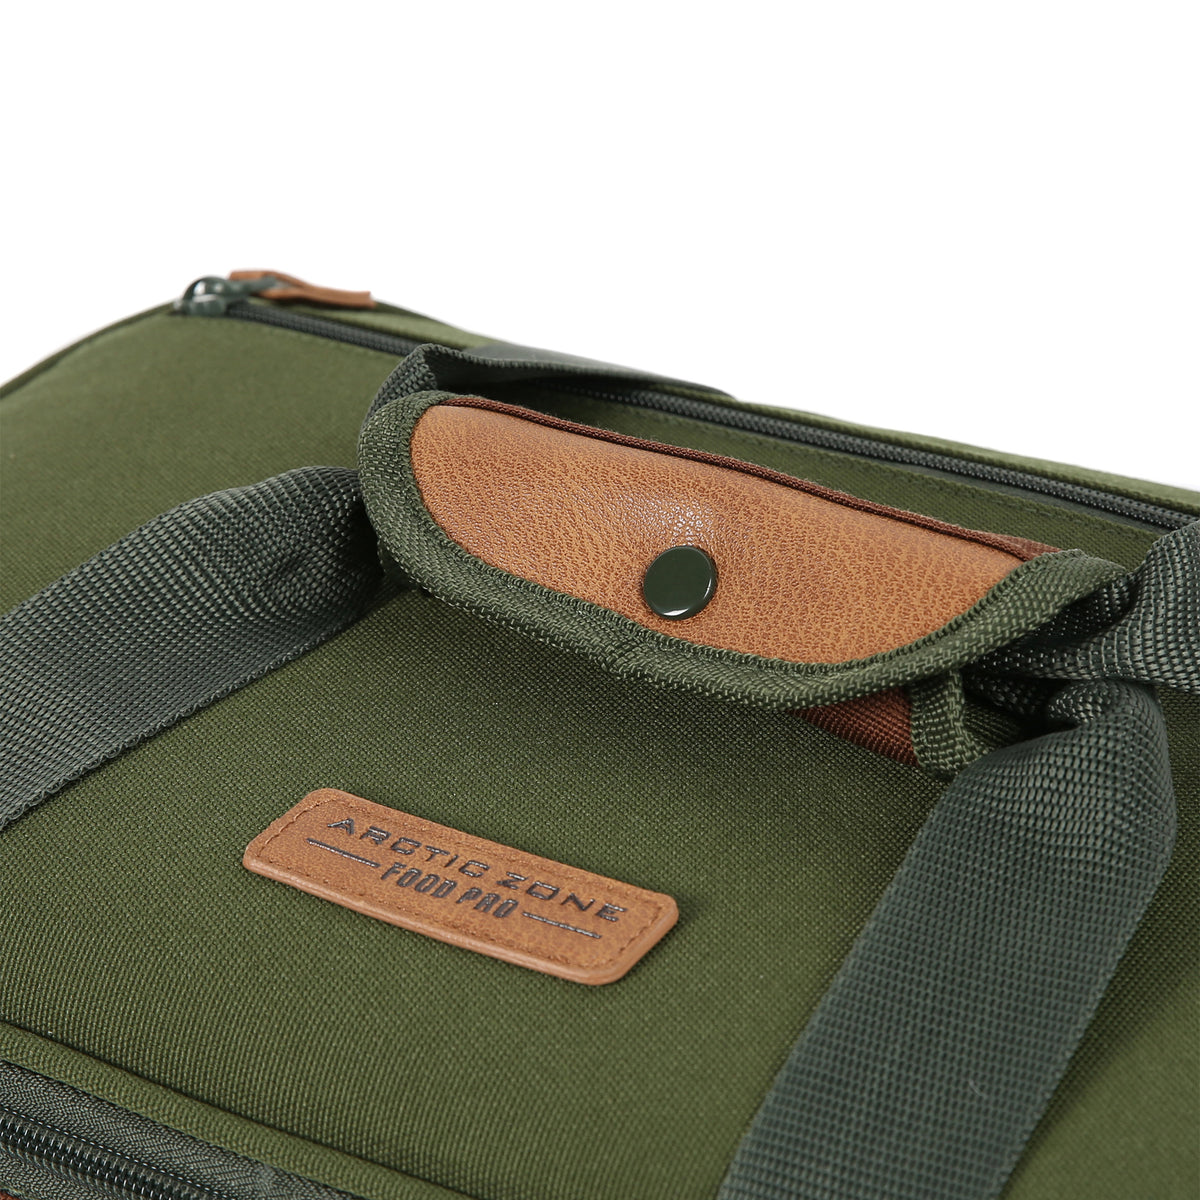 Arctic Zone® Food Pro Expandable Thermal Carrier - Green - Carry handle